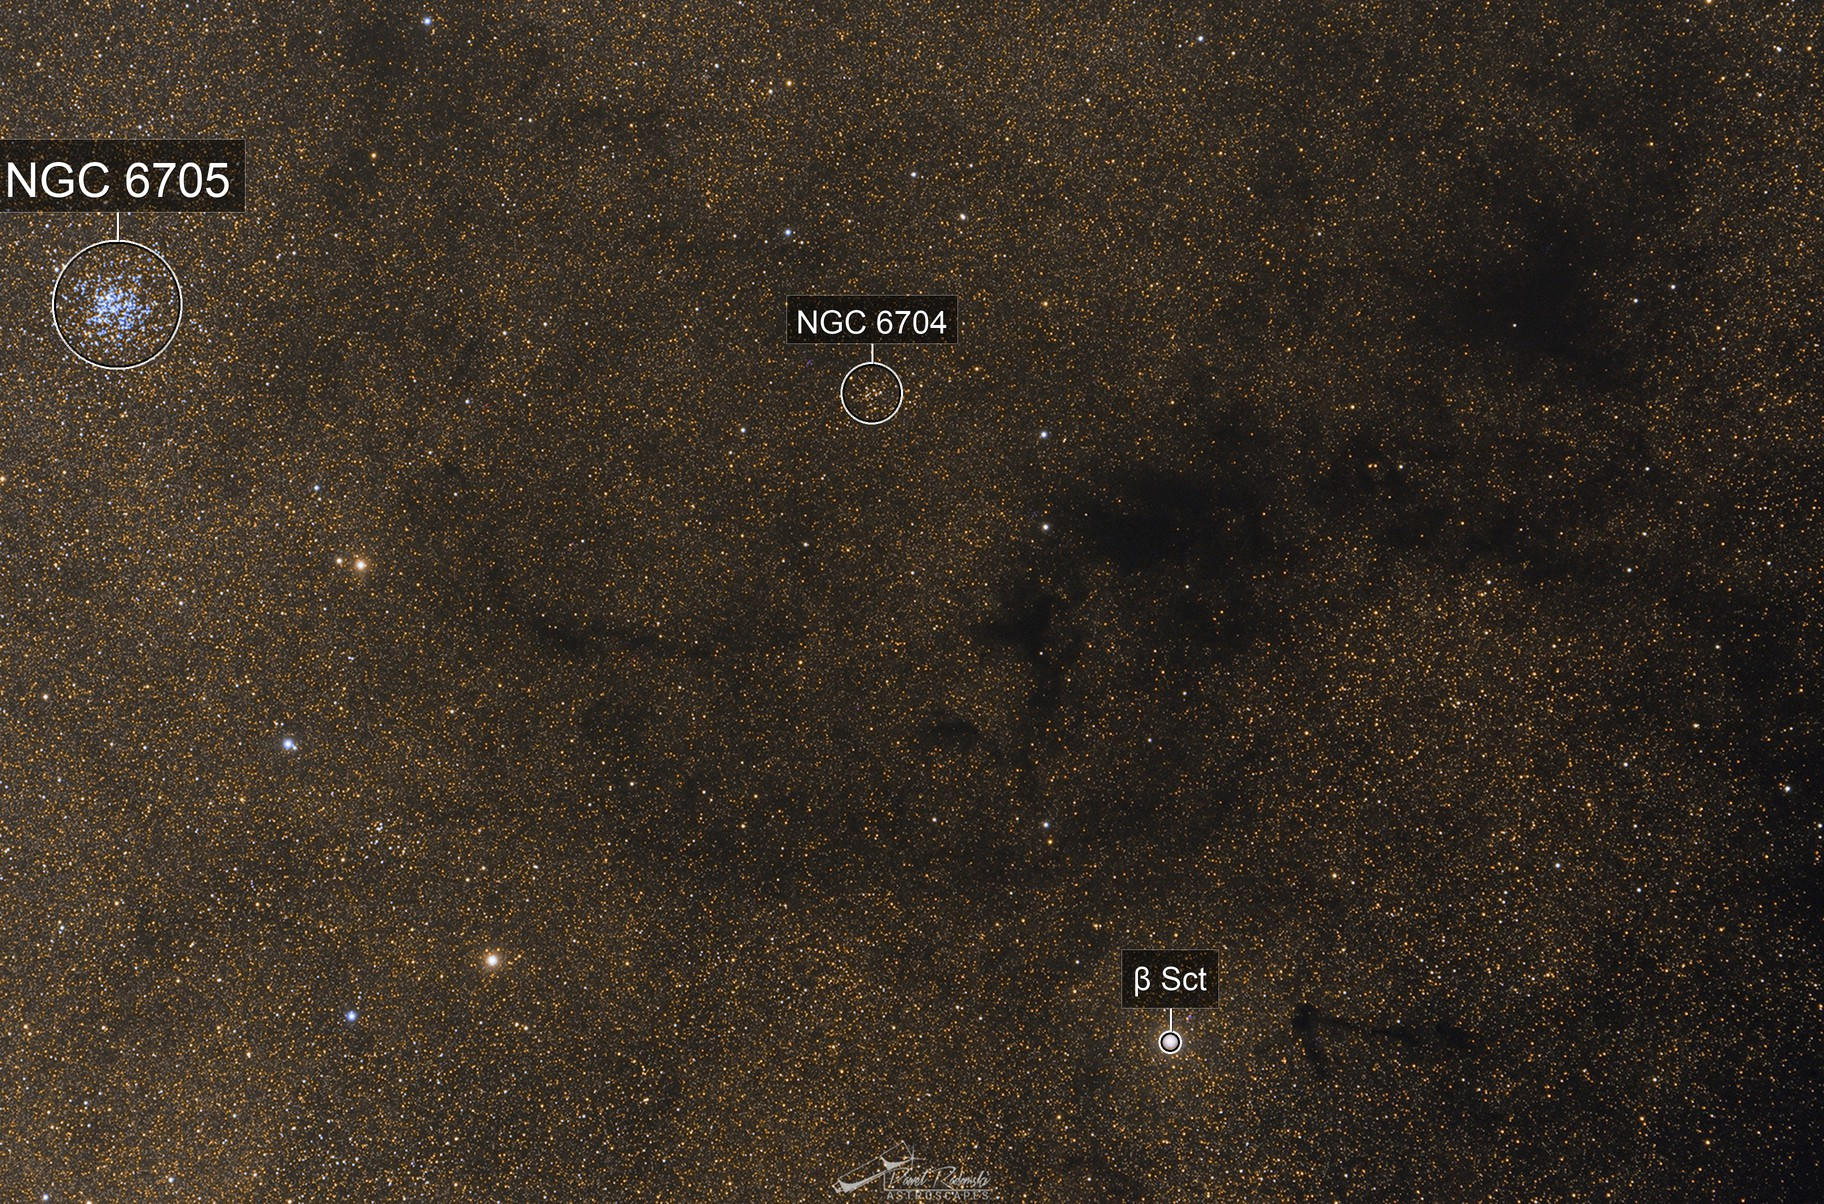 Barnard 110 and Wild Duck Cluster in Milky Way arm